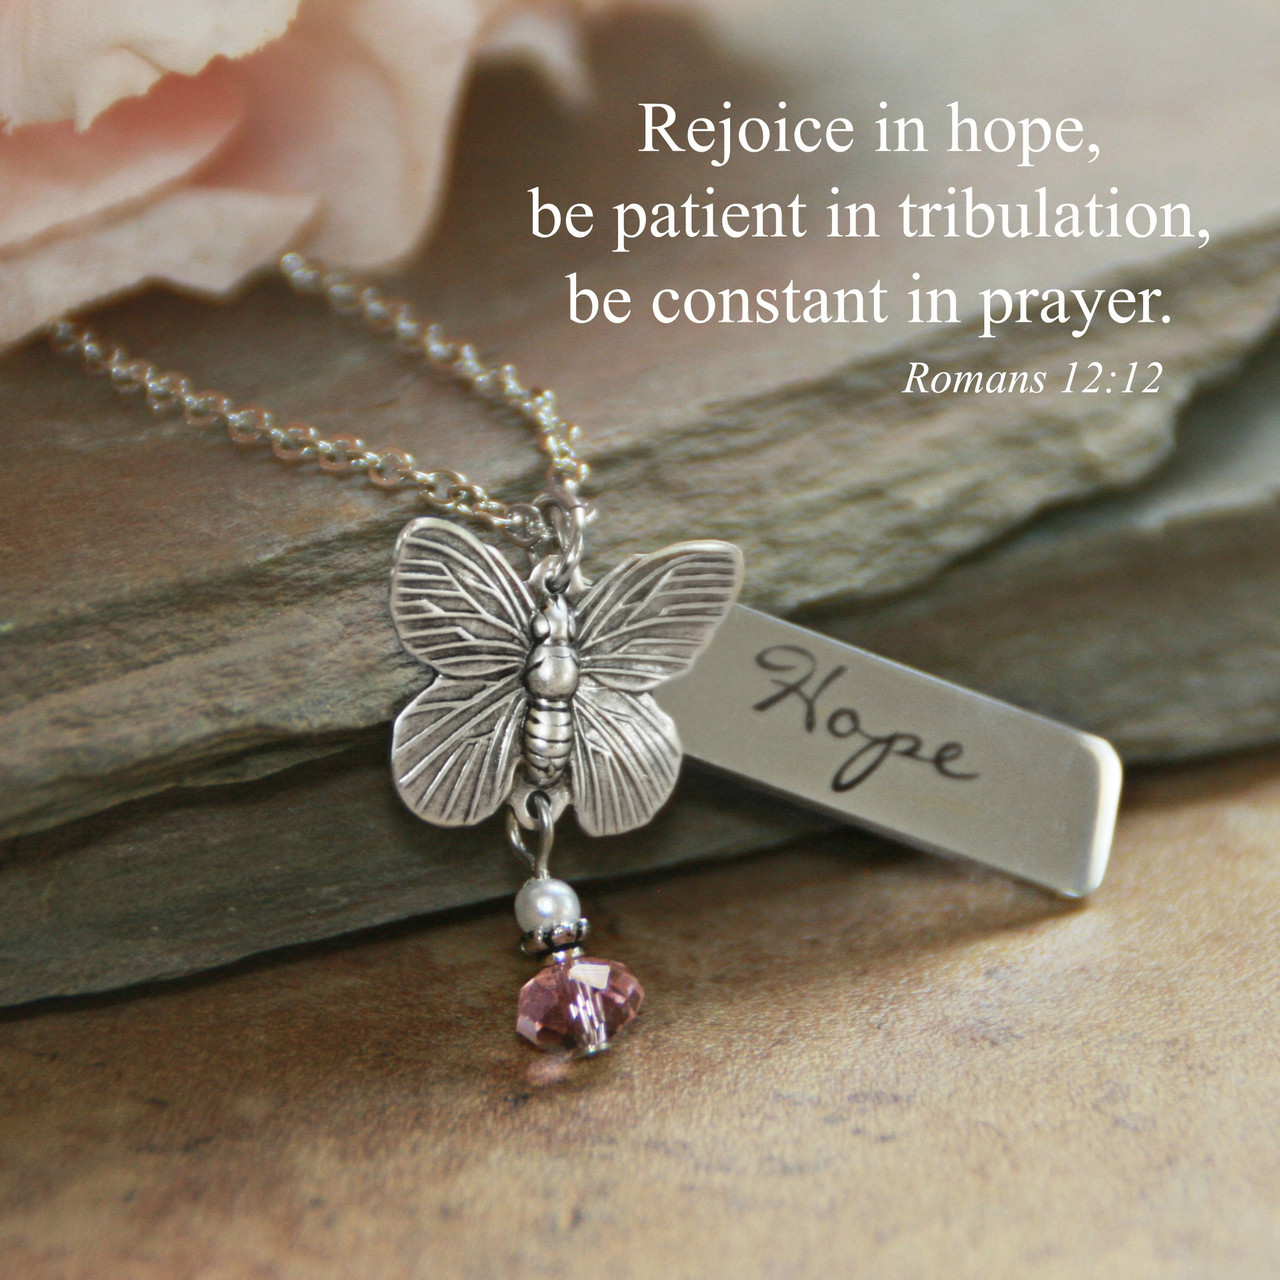 IN-614  Rejoice in Hope Butterfly Necklace Romans 12:12